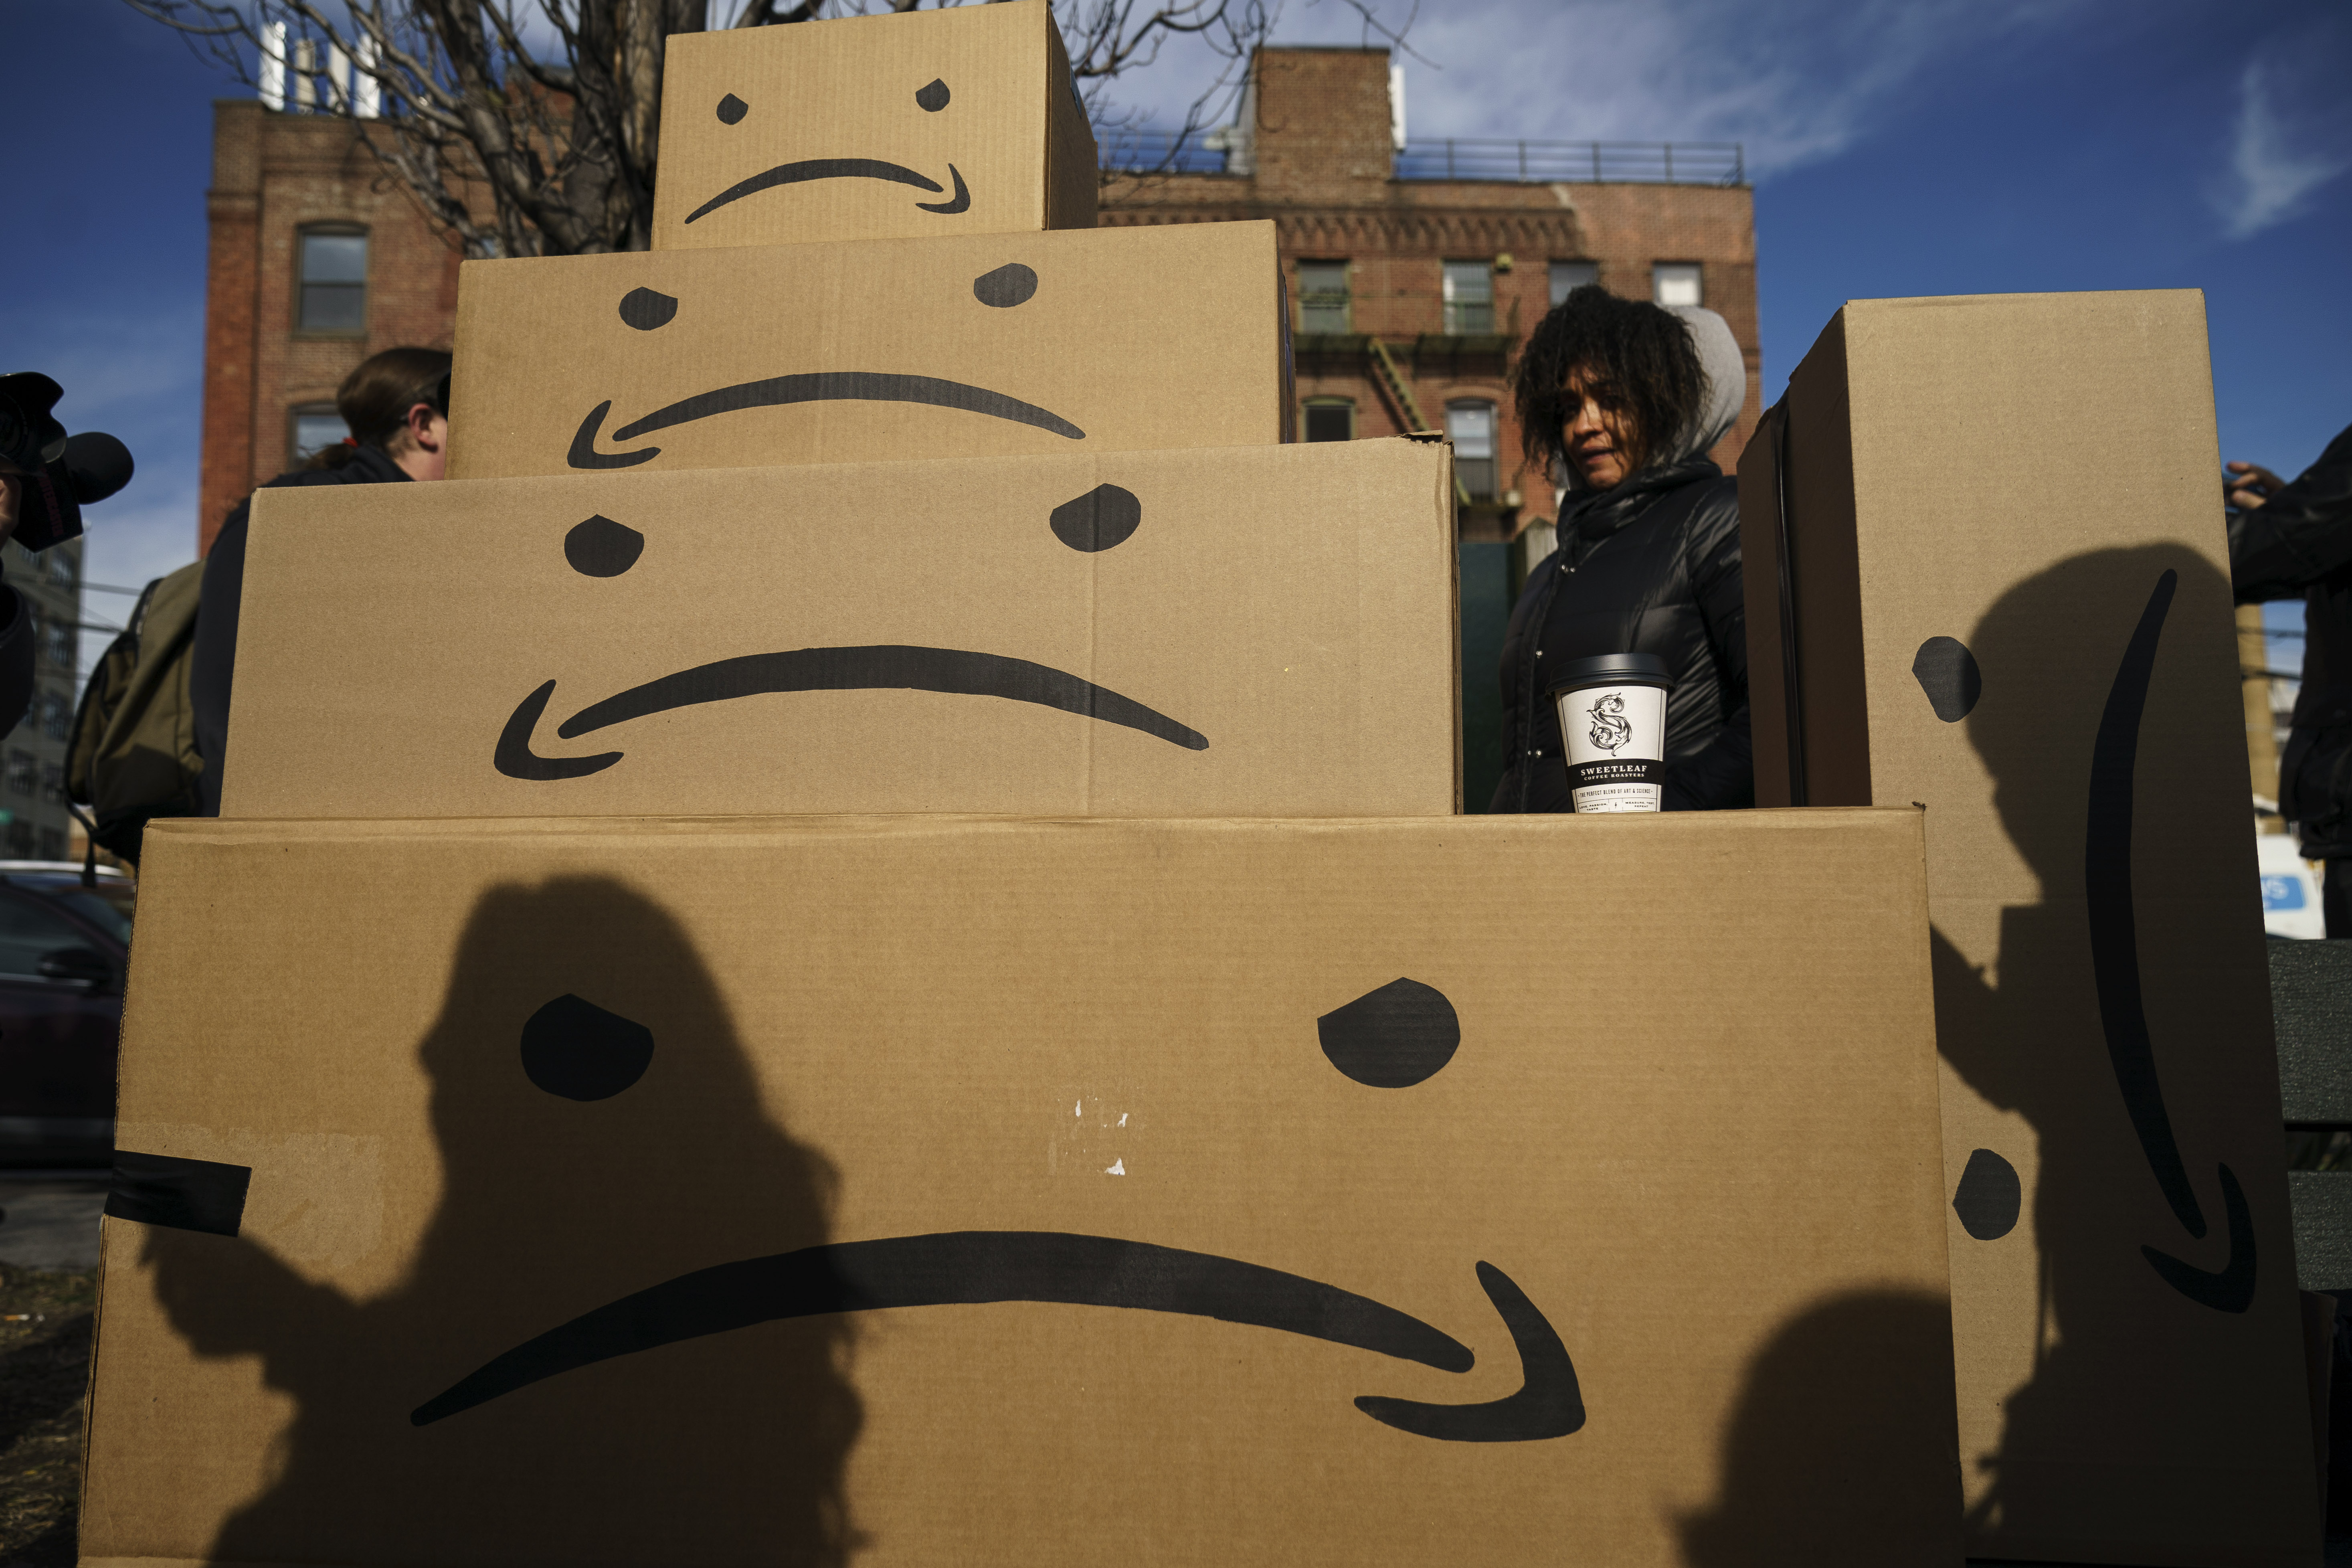 Amazon Tops List of 30 'Most Evil' Tech Companies Harming Humanity